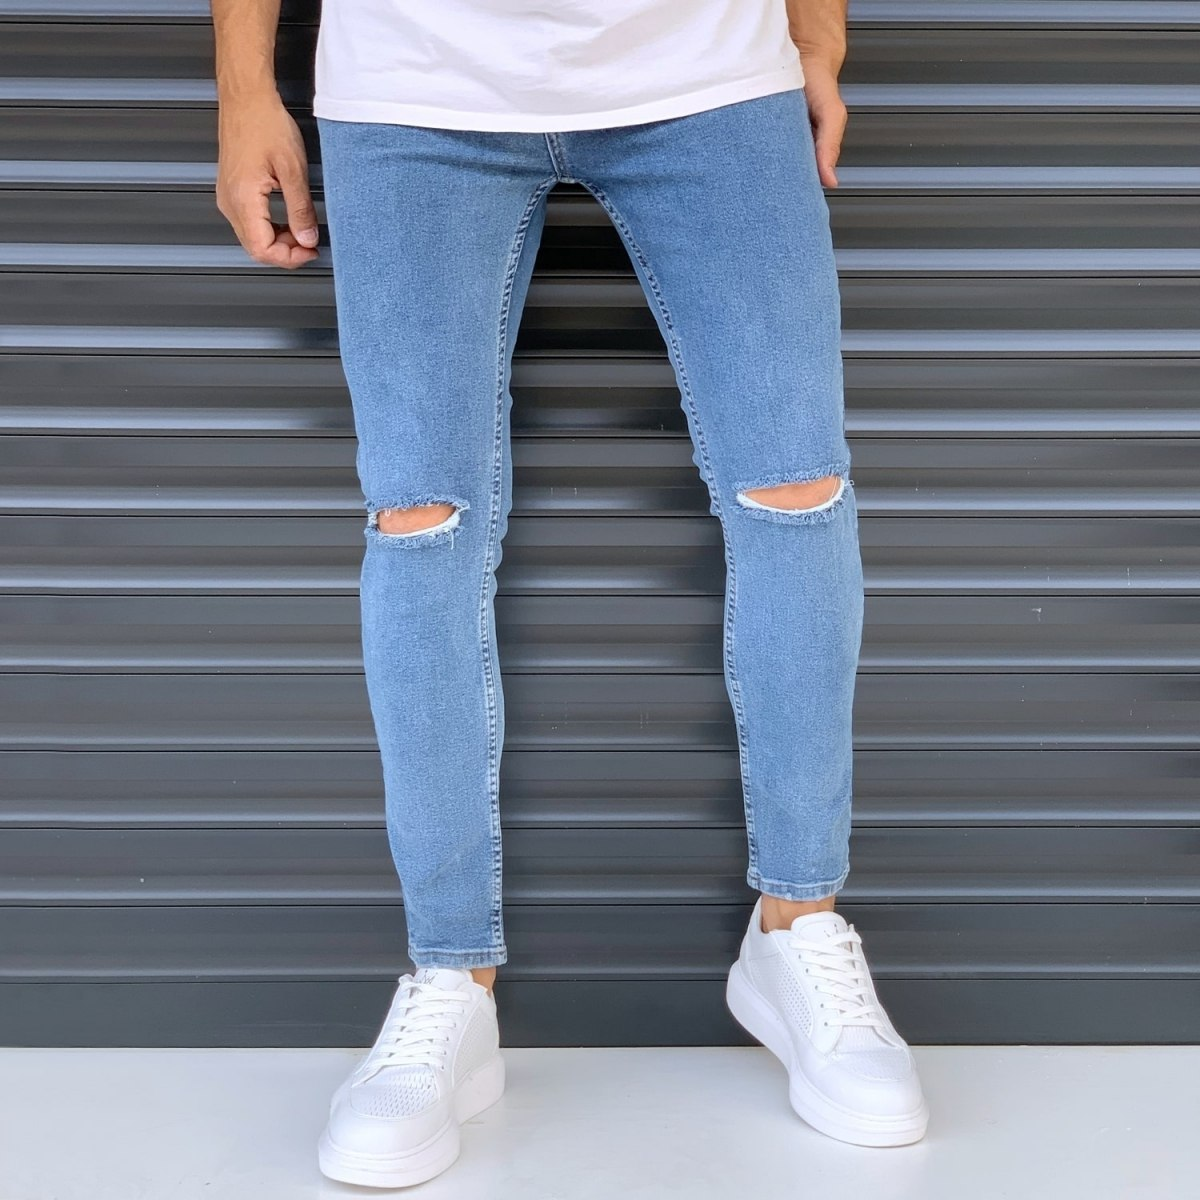 Men's Basic Jeans With Knee Rips Denim Blue Mv Premium Brand - 1